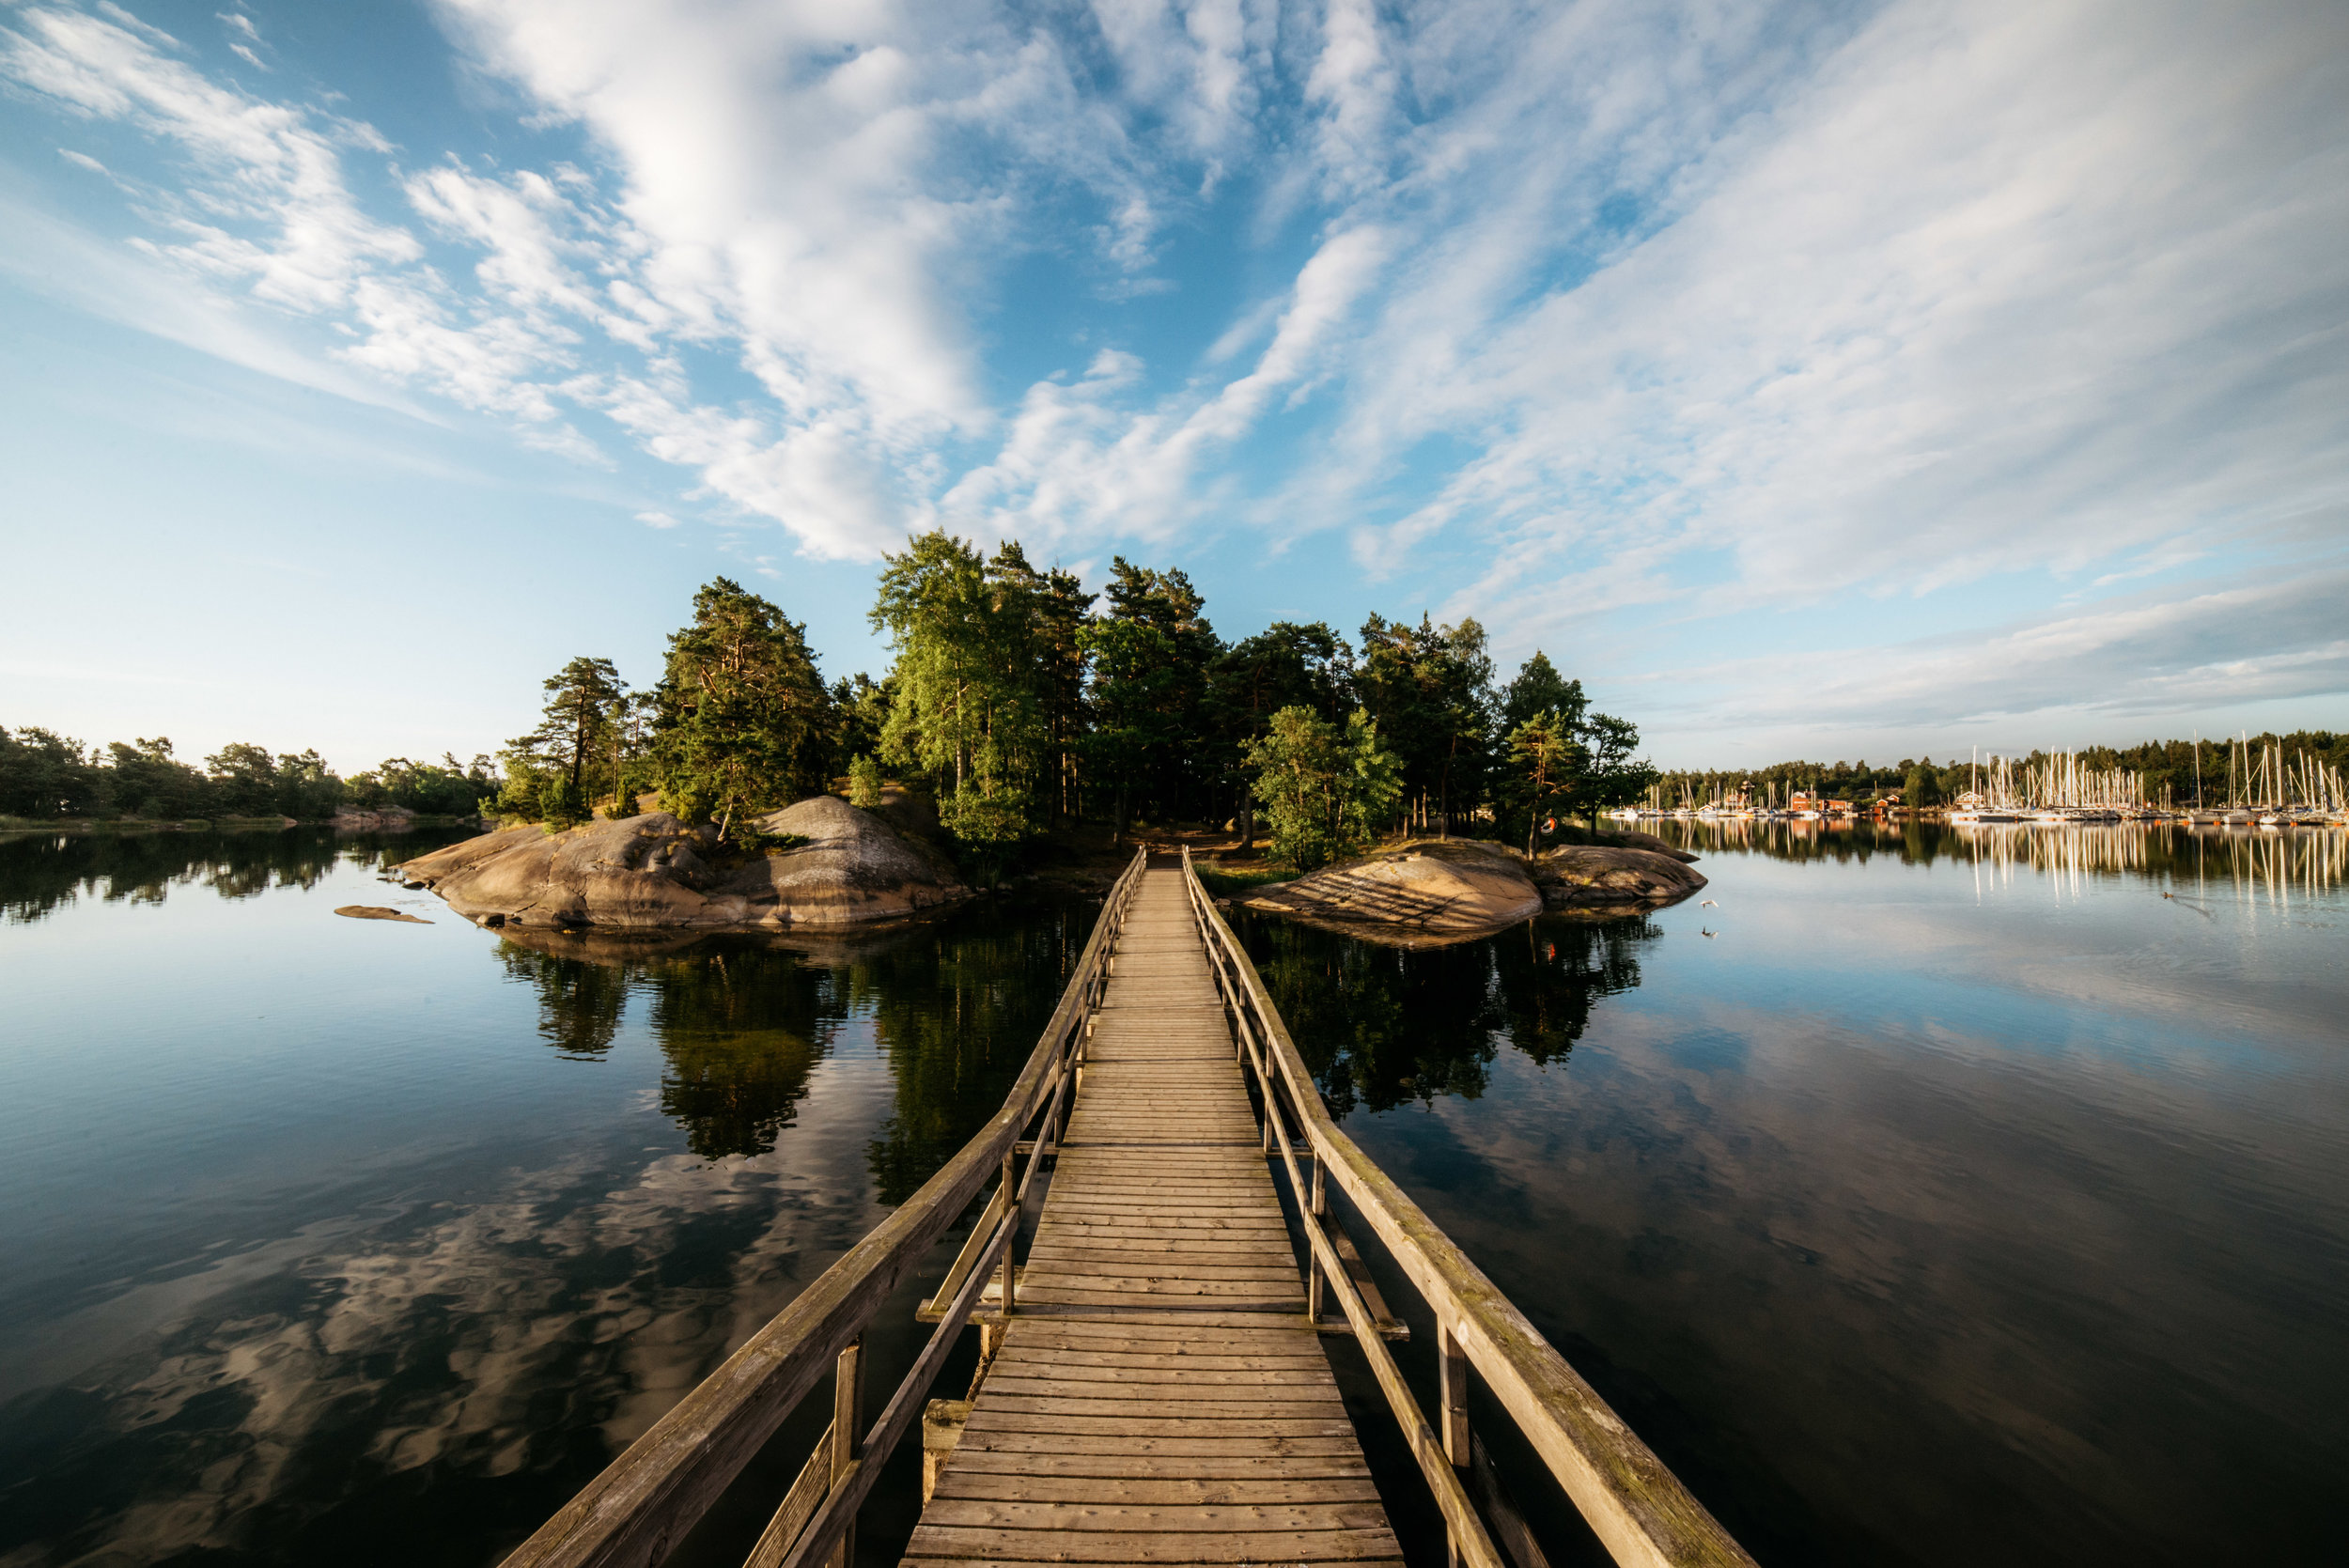 Swedish seascape - tiny island with a bridge